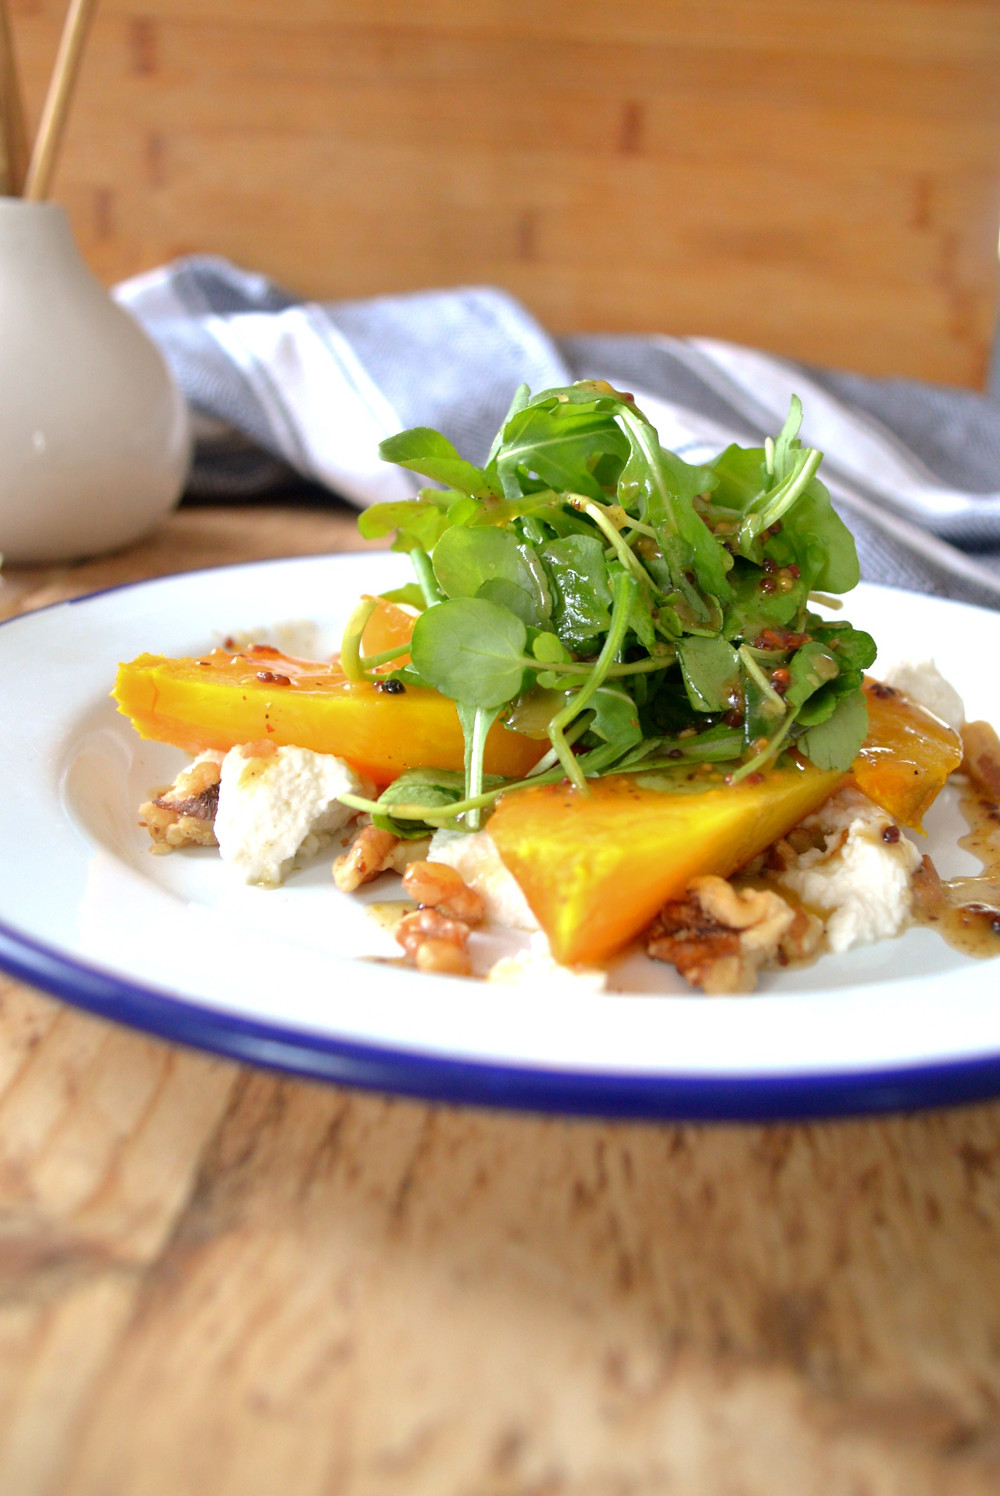 Wedges of golden beetroot with walnuts, goat's cheese and salad leaves with a mustard and honey dressing.